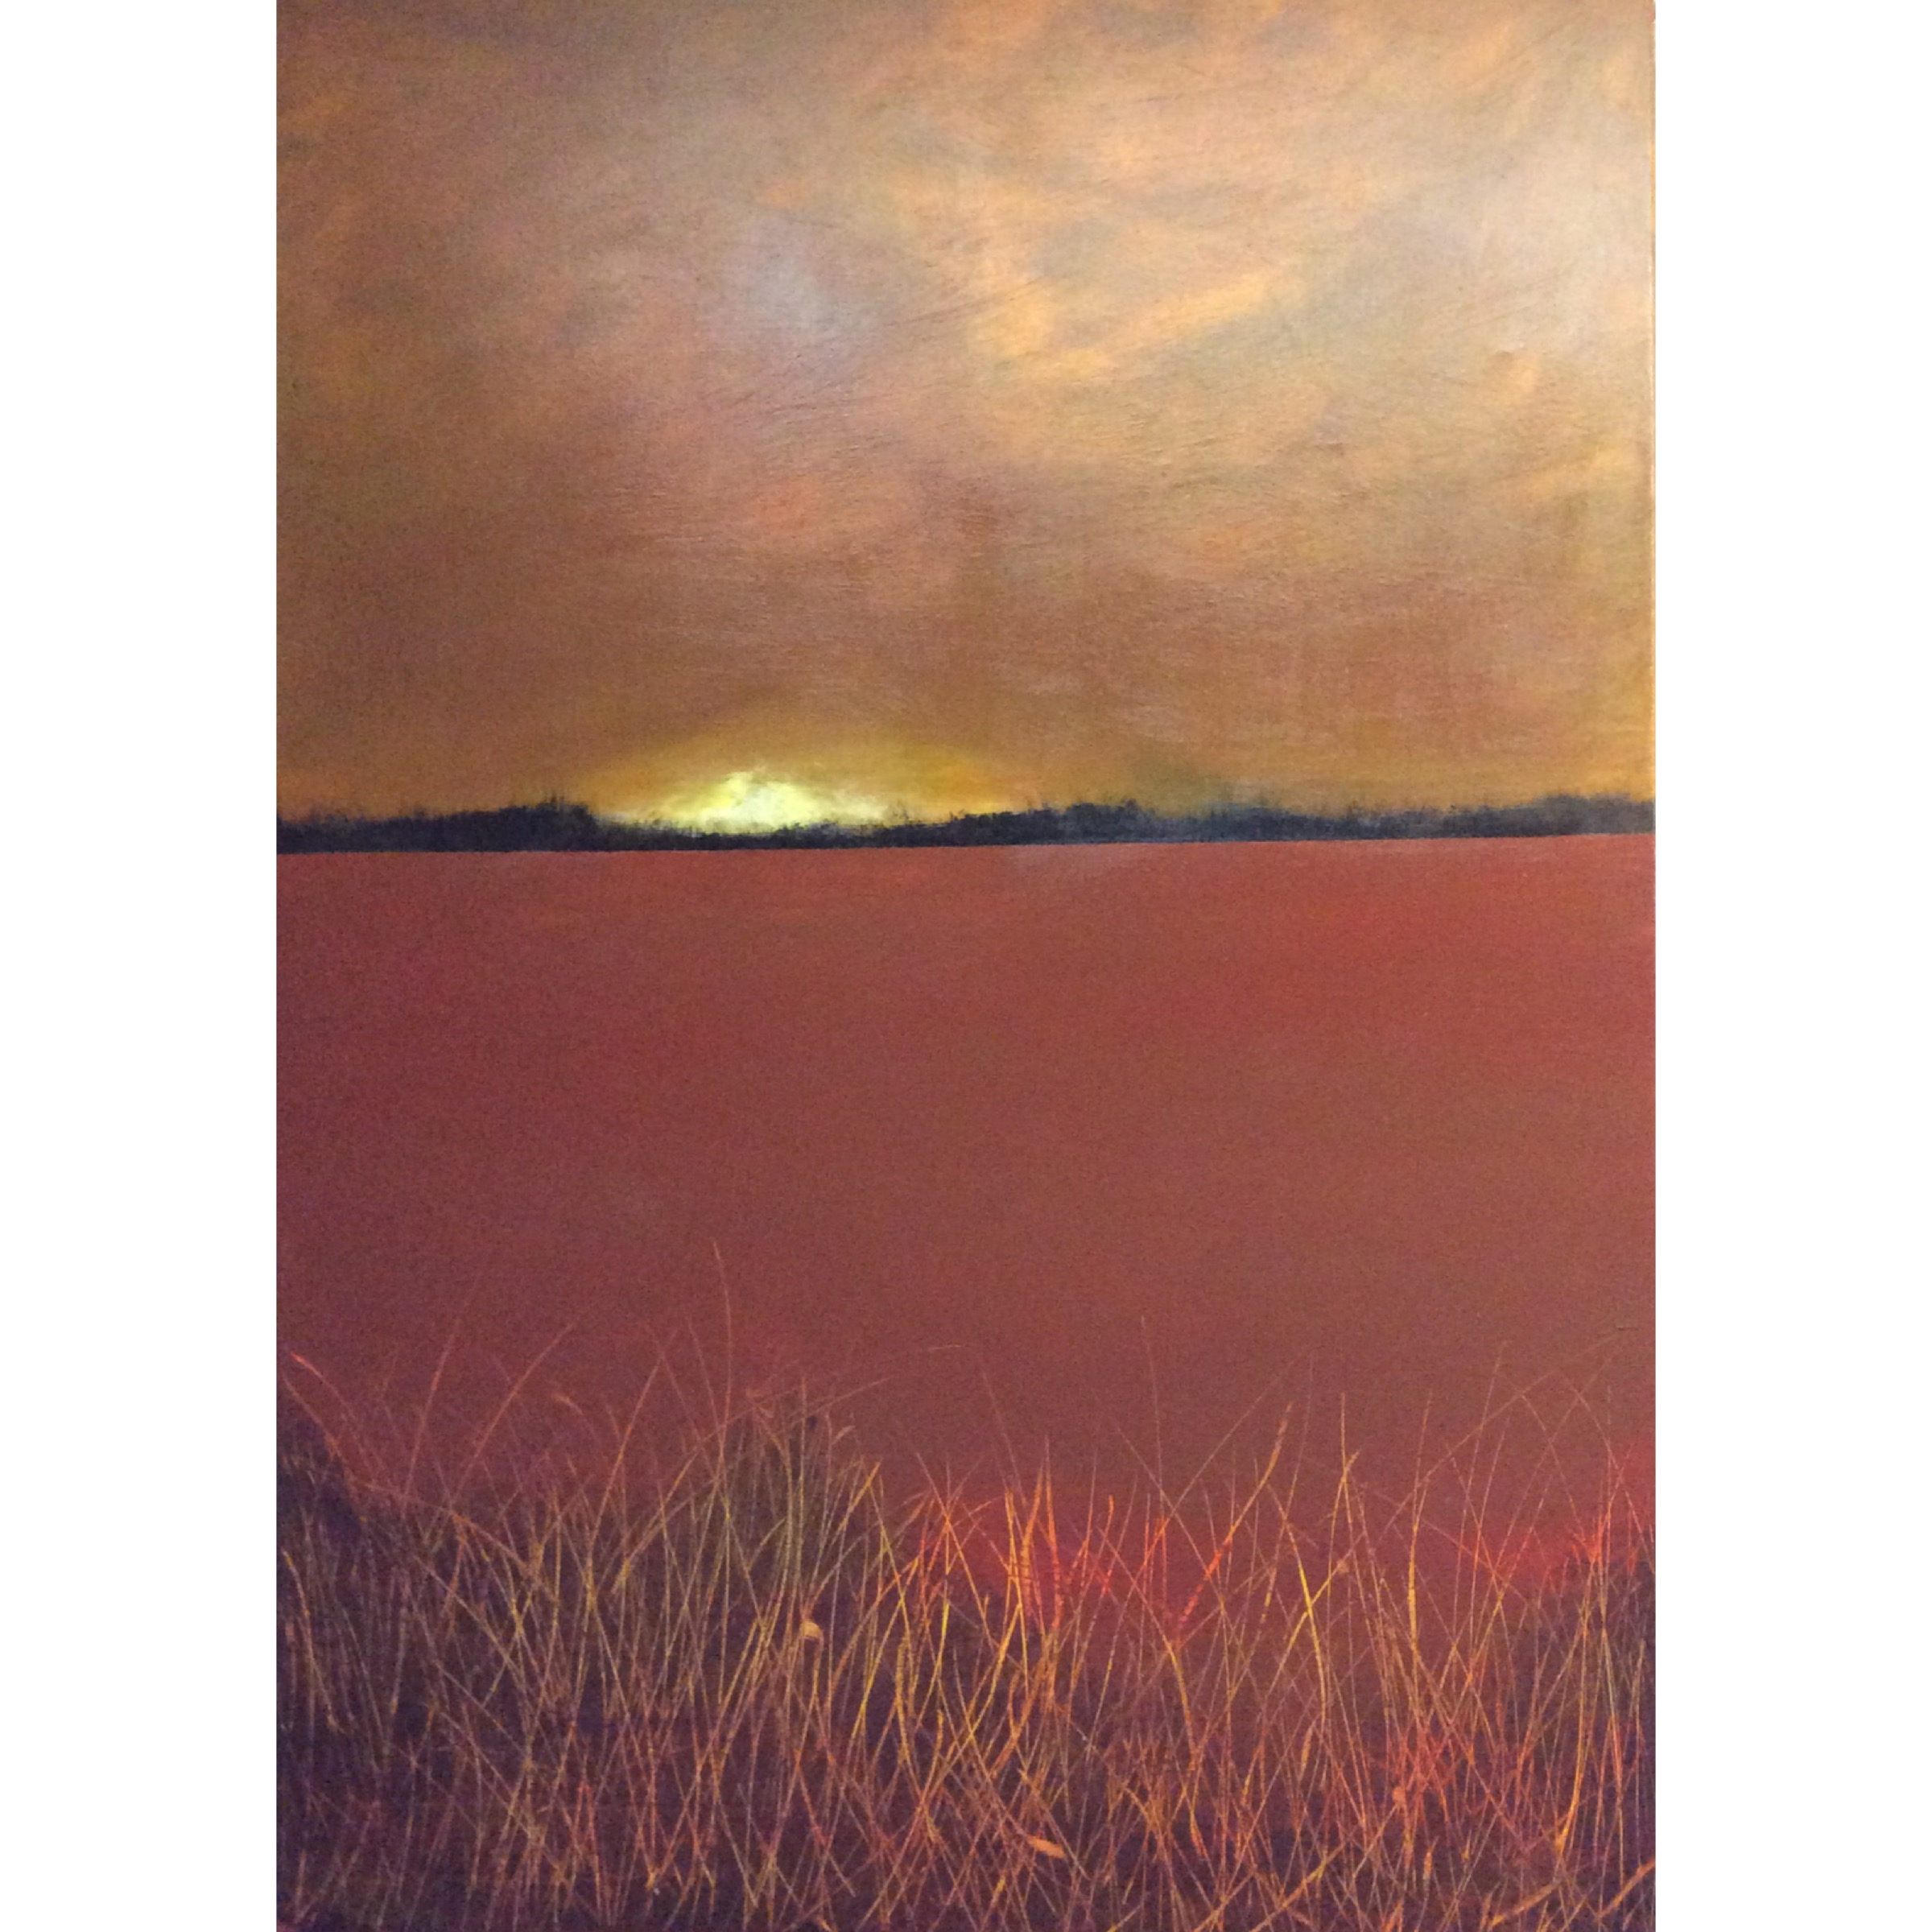 Abstract landscape in warm colors